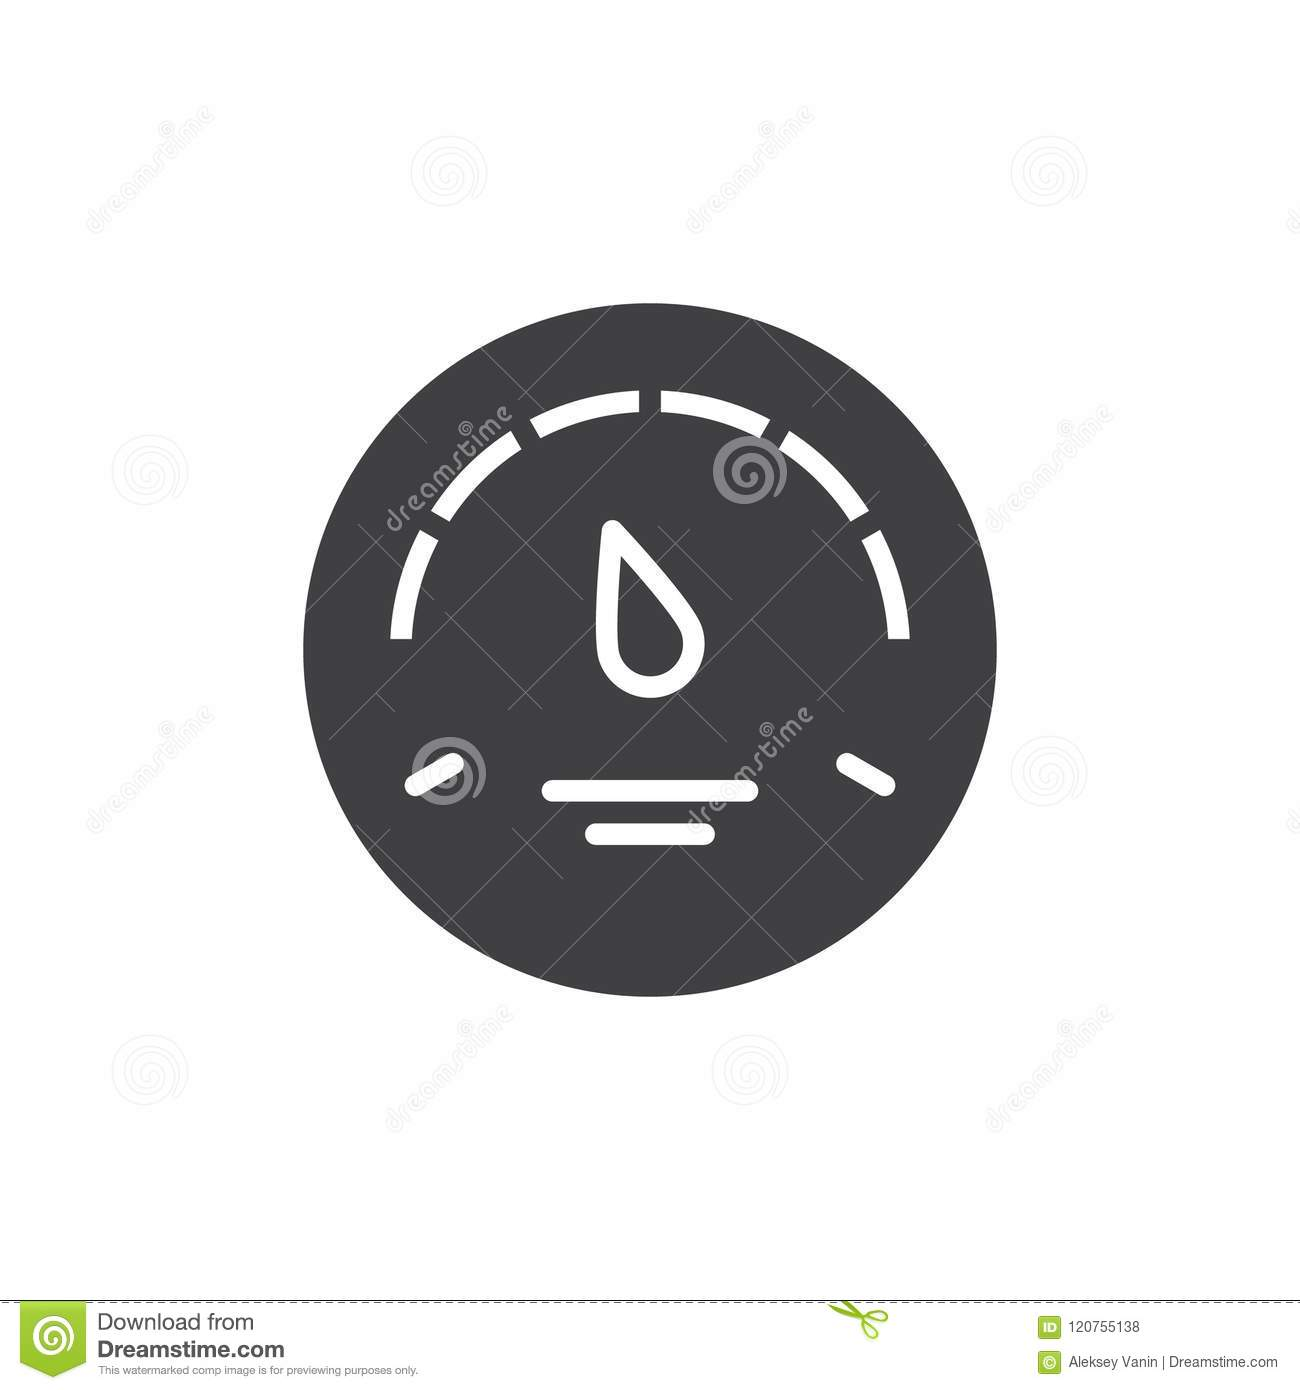 Gas Gauge Vector Icon Stock Vector Illustration Of Design 120755138